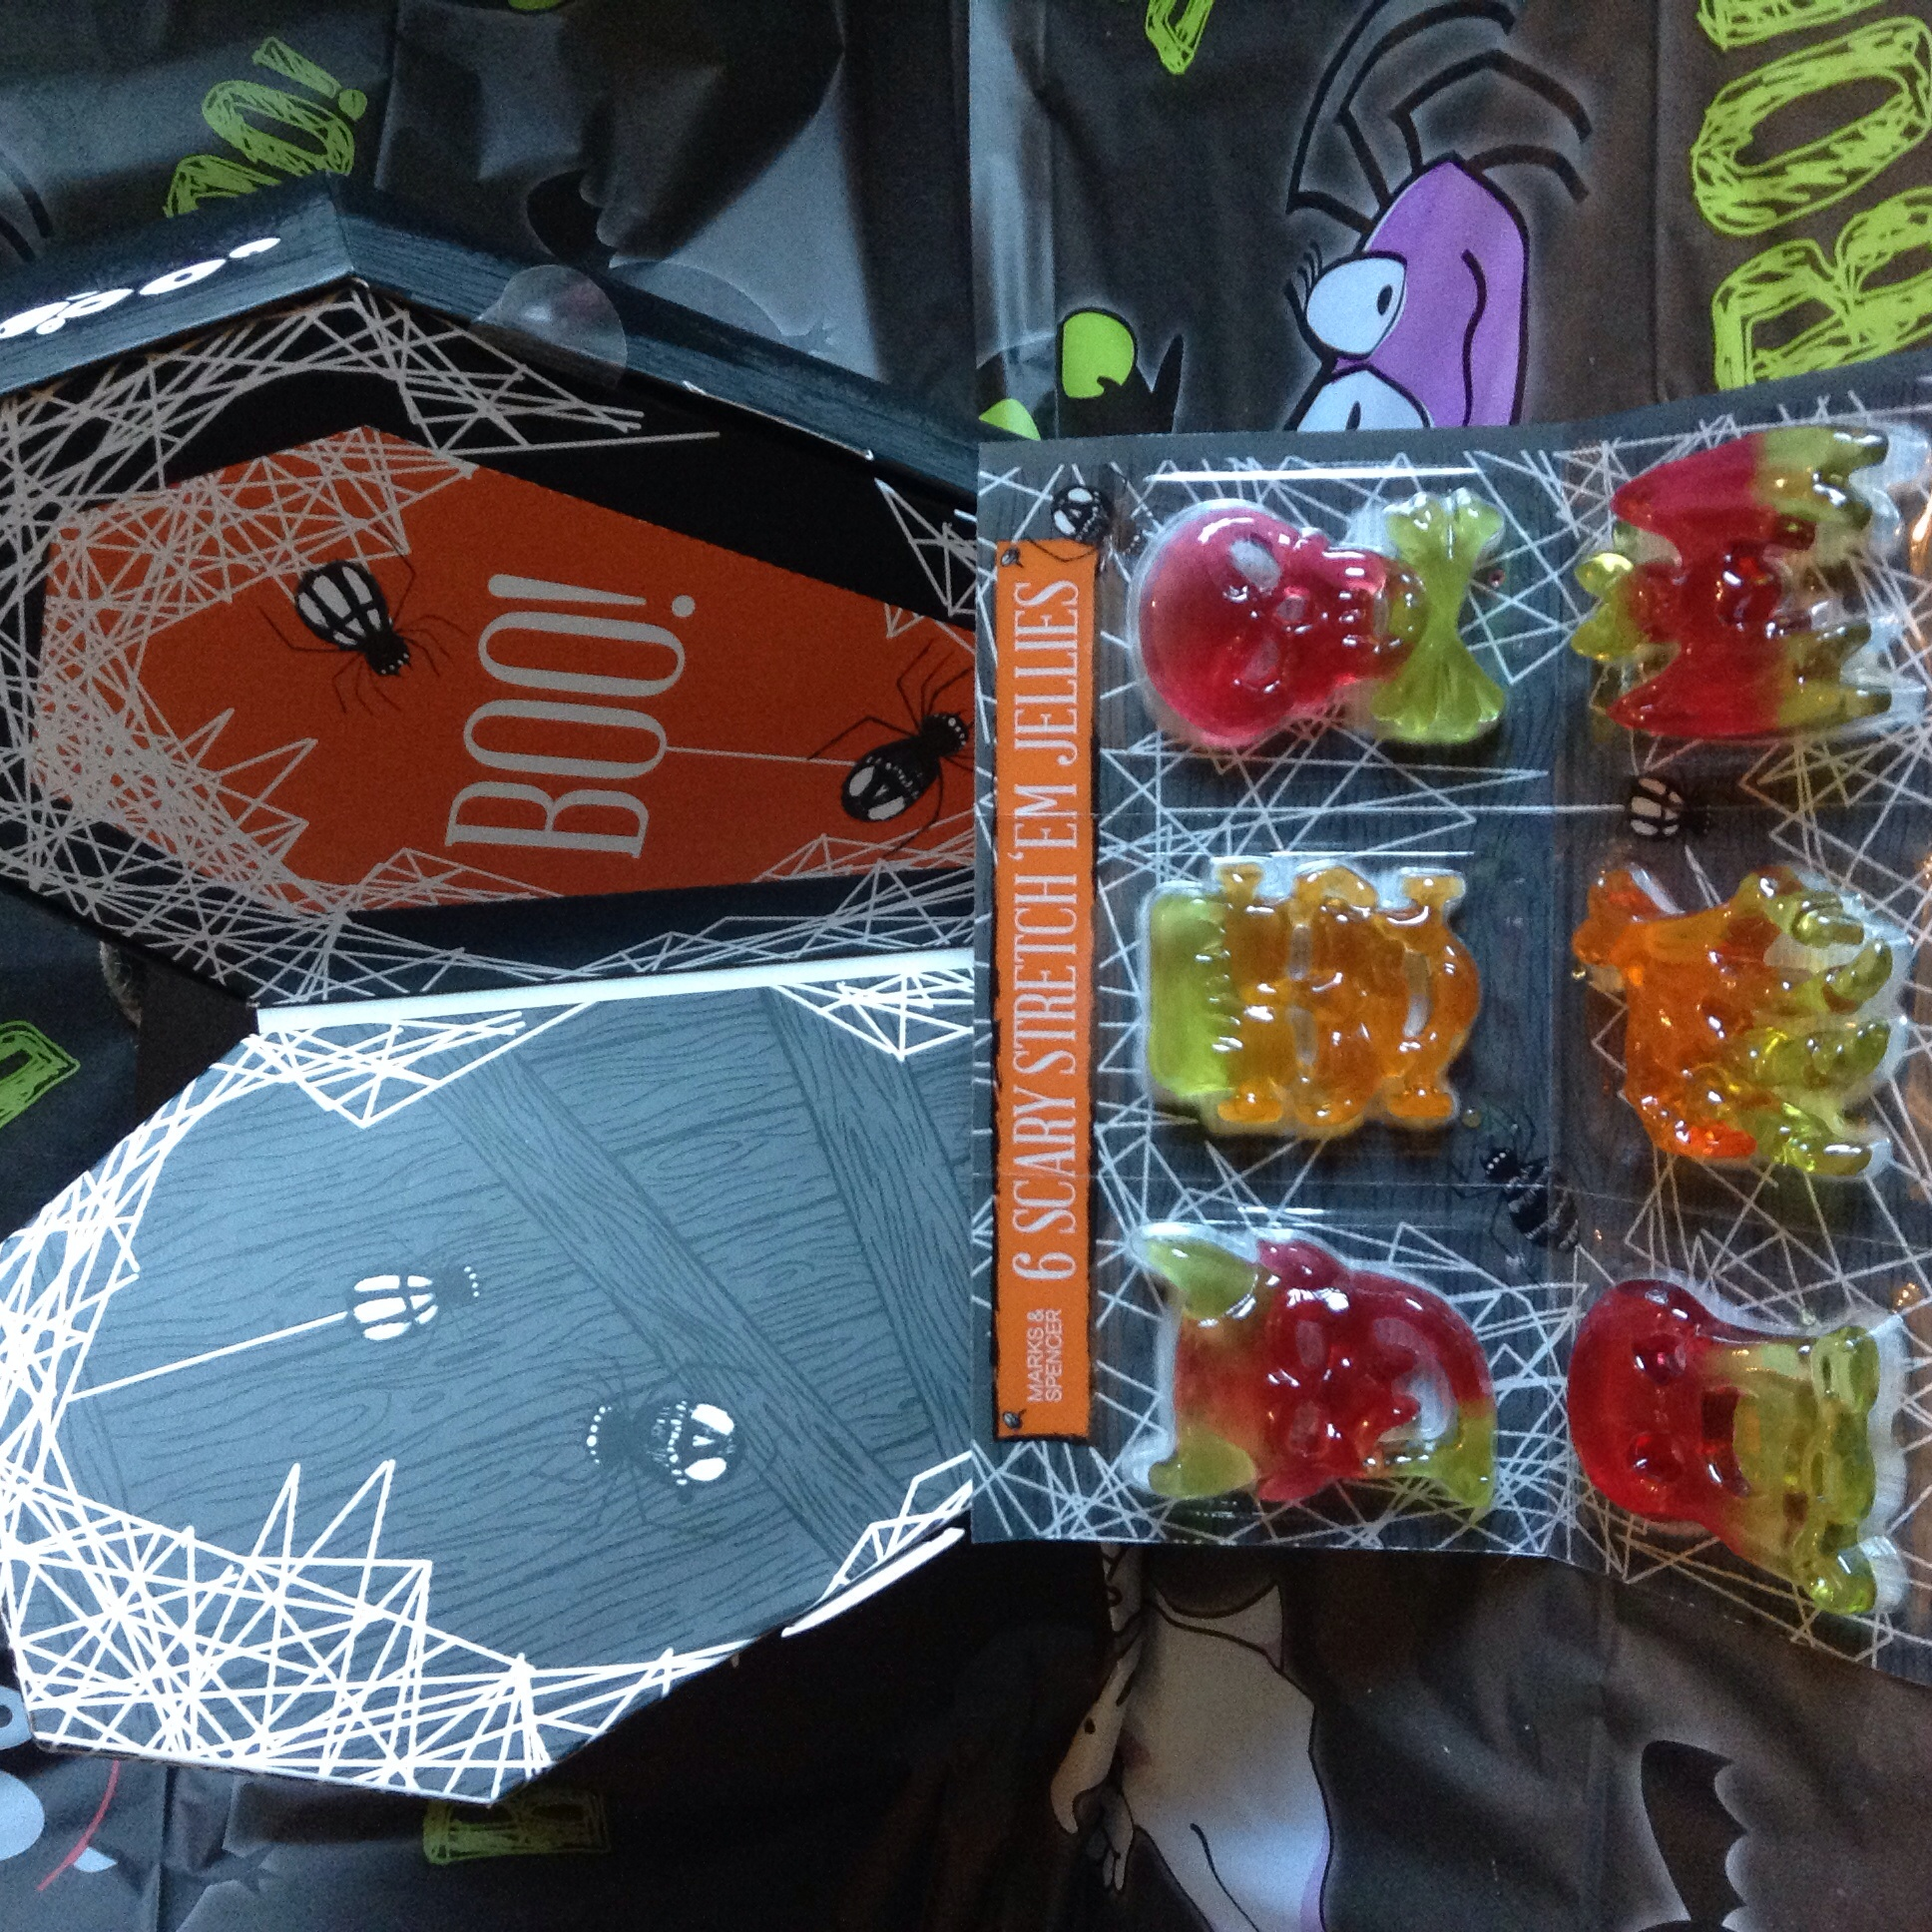 Scary jellies £1.00 JUST like the ones we had with He-Man shapes as kids!